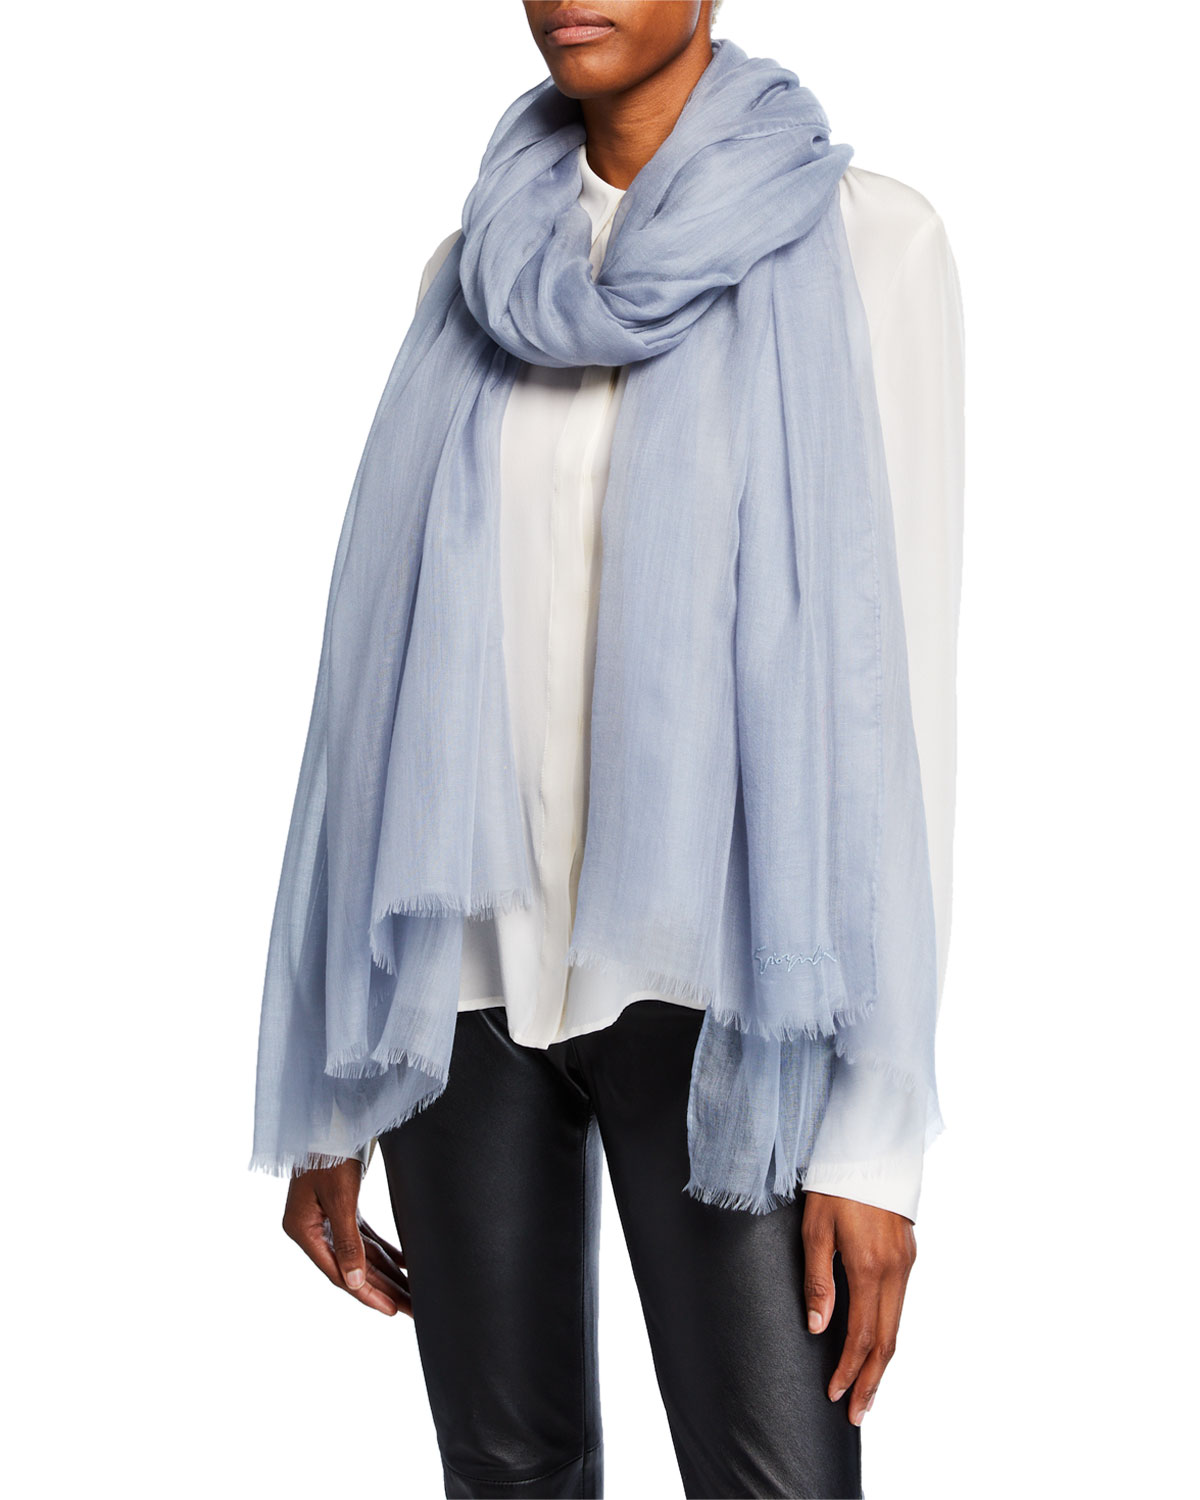 42b642c658683 giorgio armani cashmere scarves for women - Buy best women's giorgio armani cashmere  scarves on Cools.com Shop